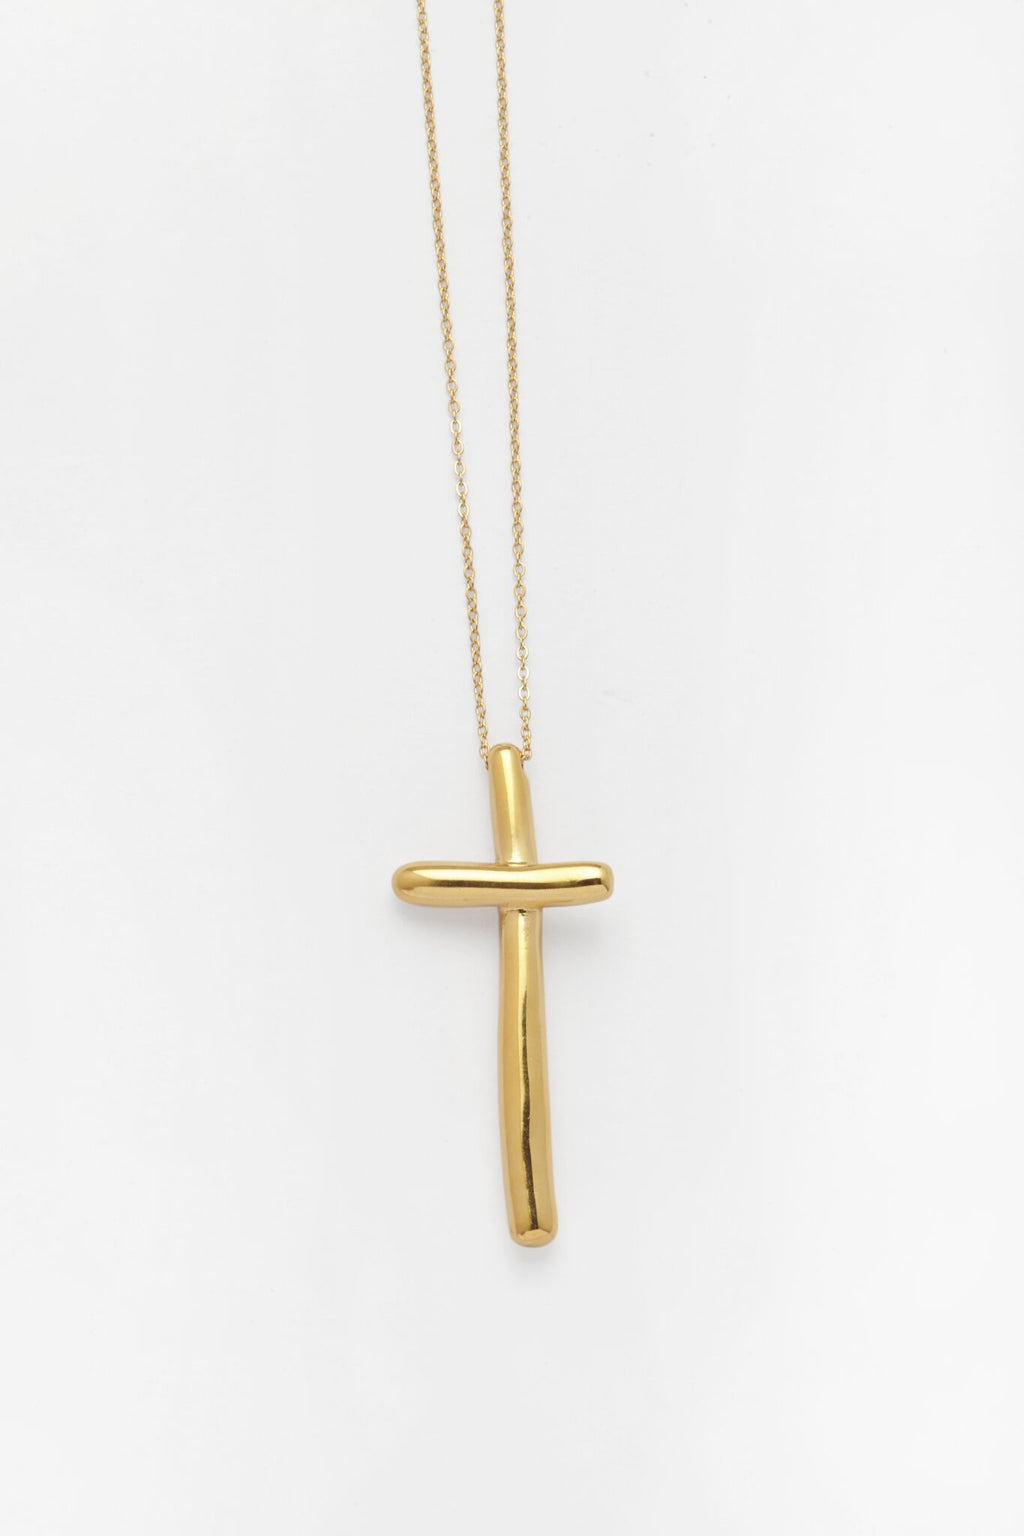 Pilgrim's Cross Necklace